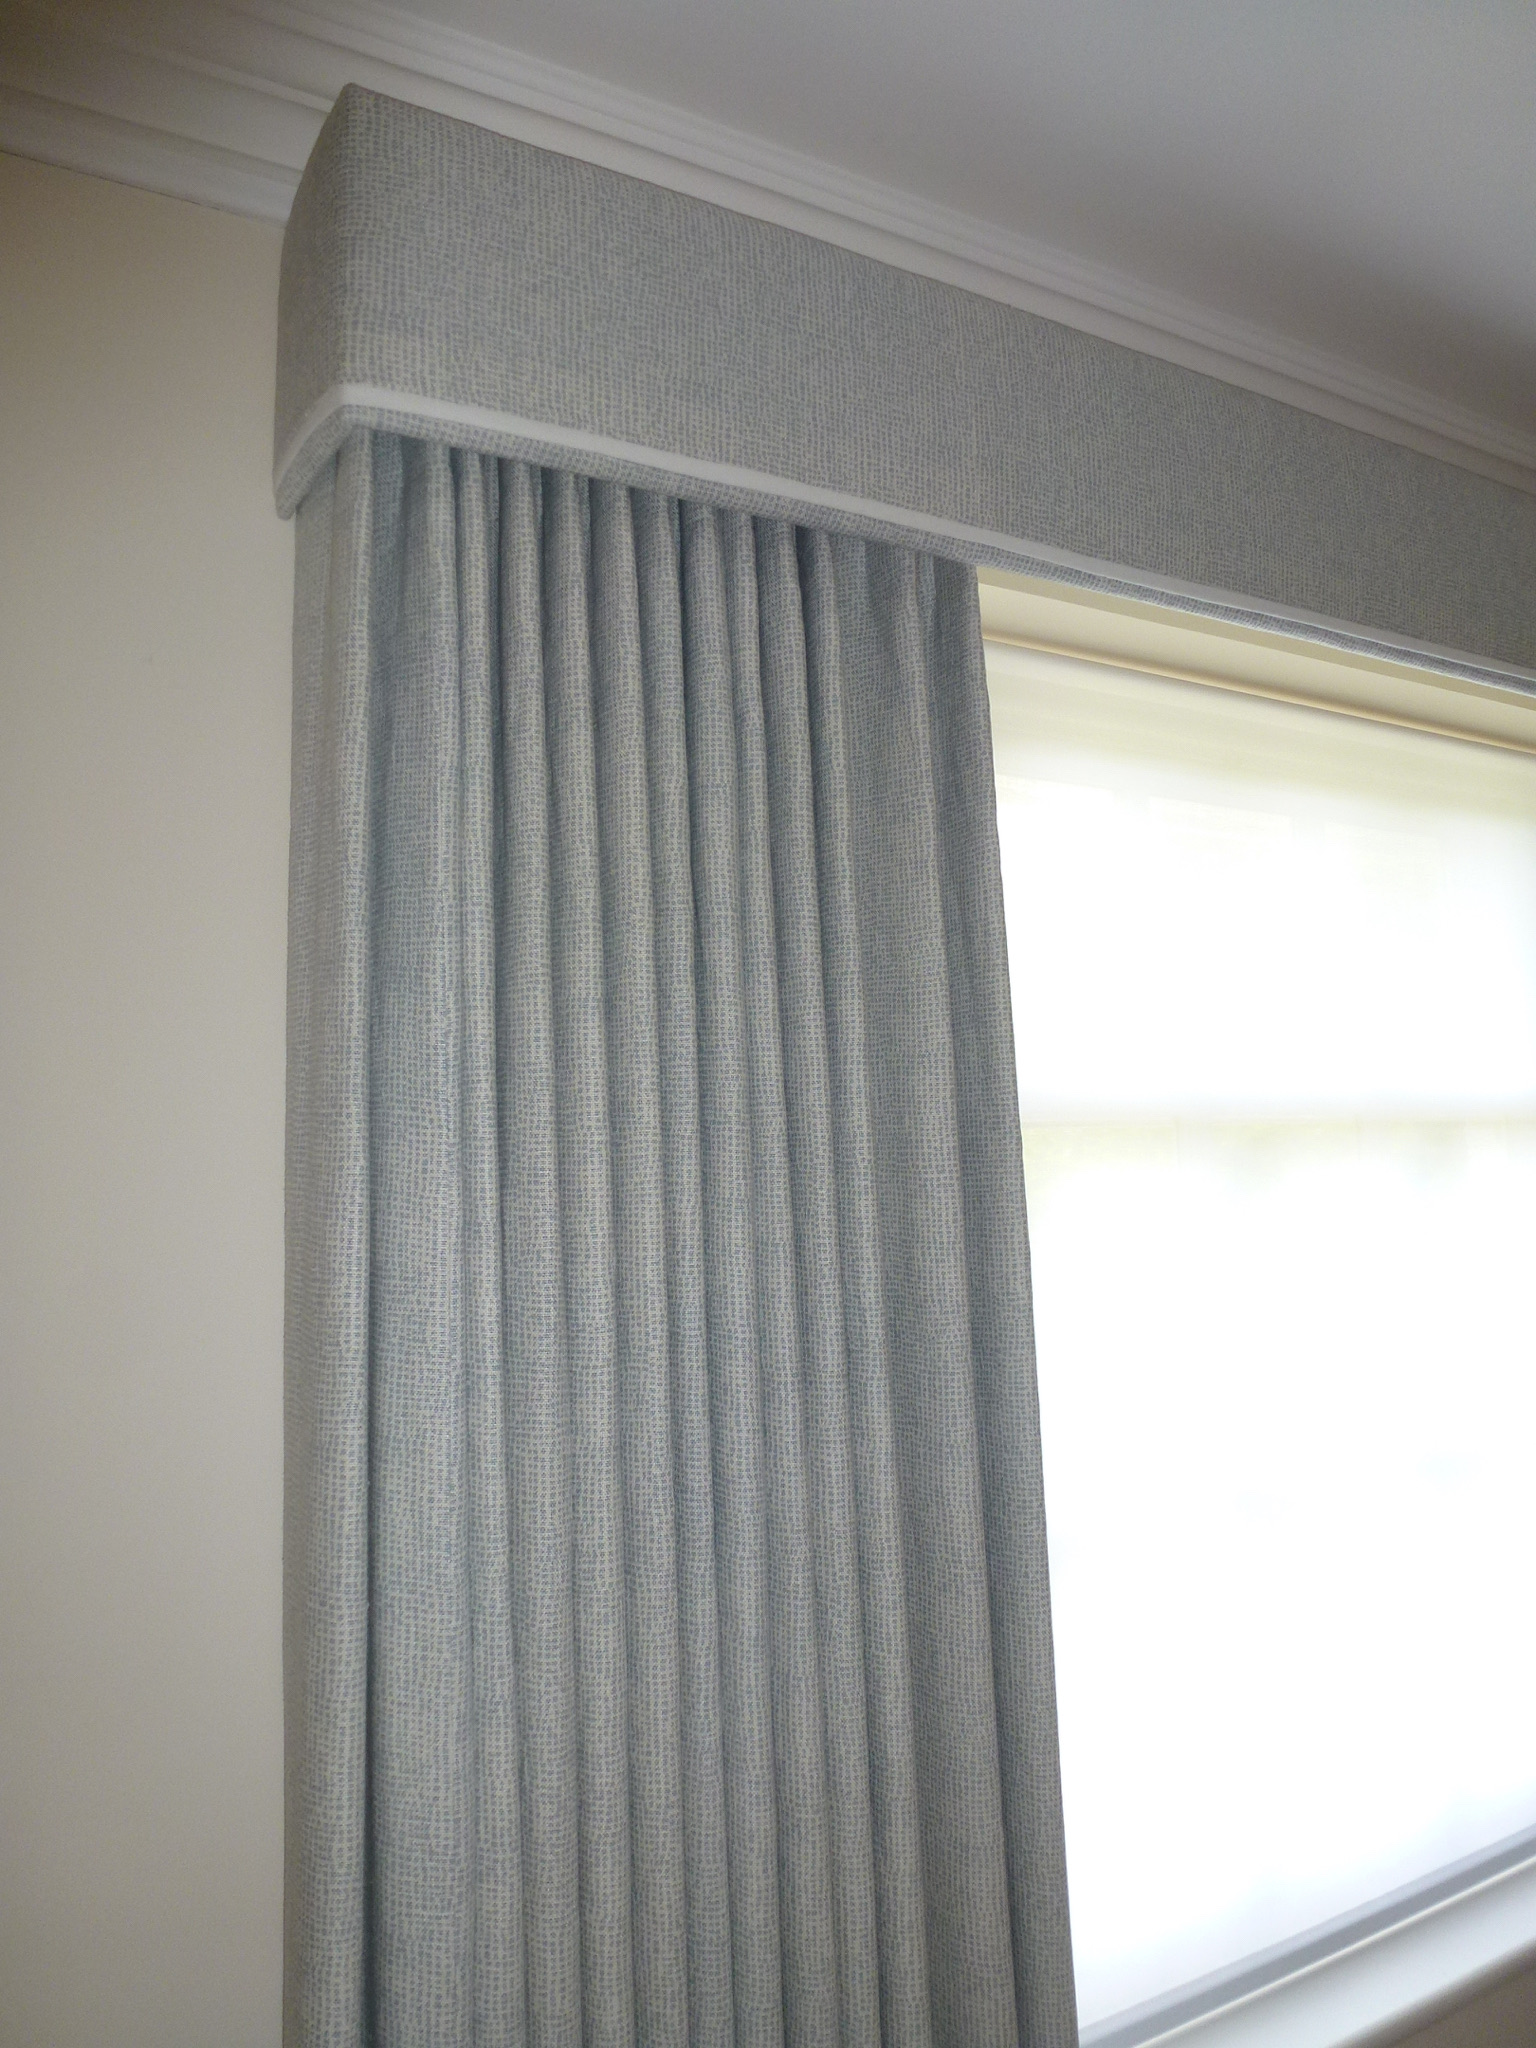 single pinch pleat curtains under pelmet with cream trim